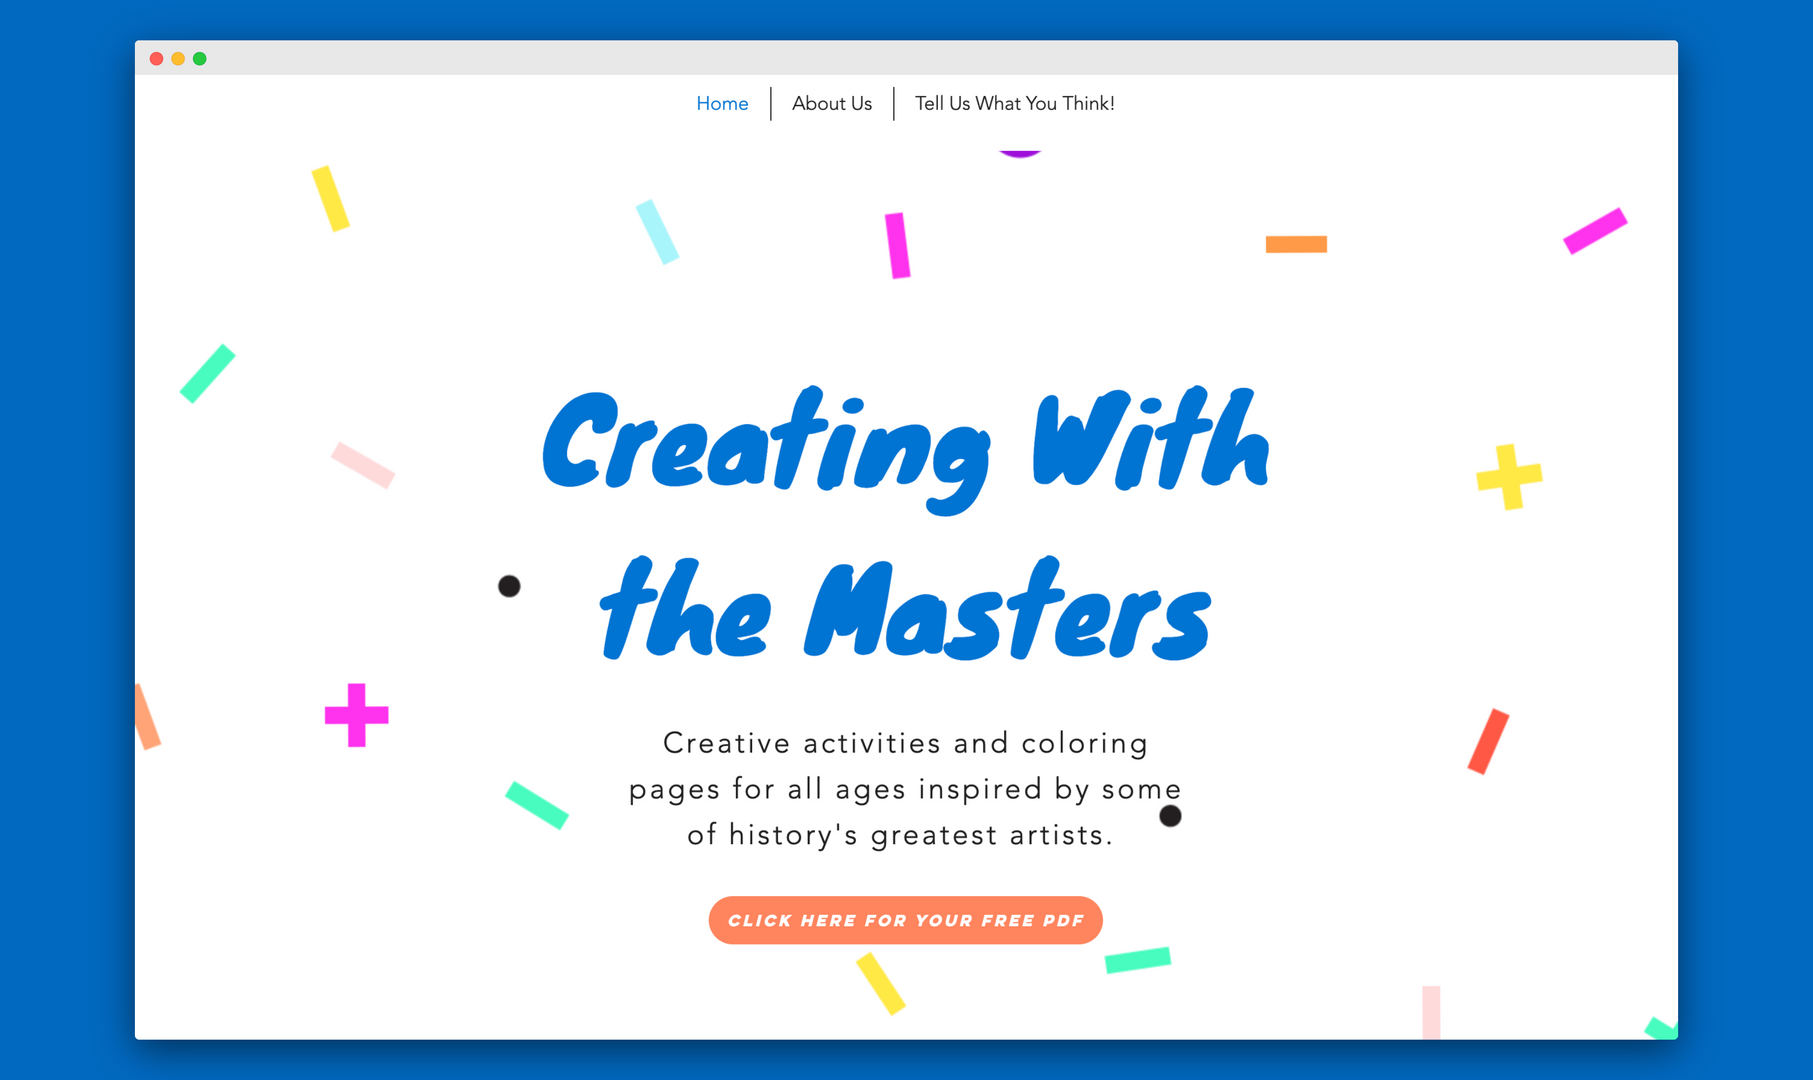 creatingwithmasters.com, where the activity book is available for free download.